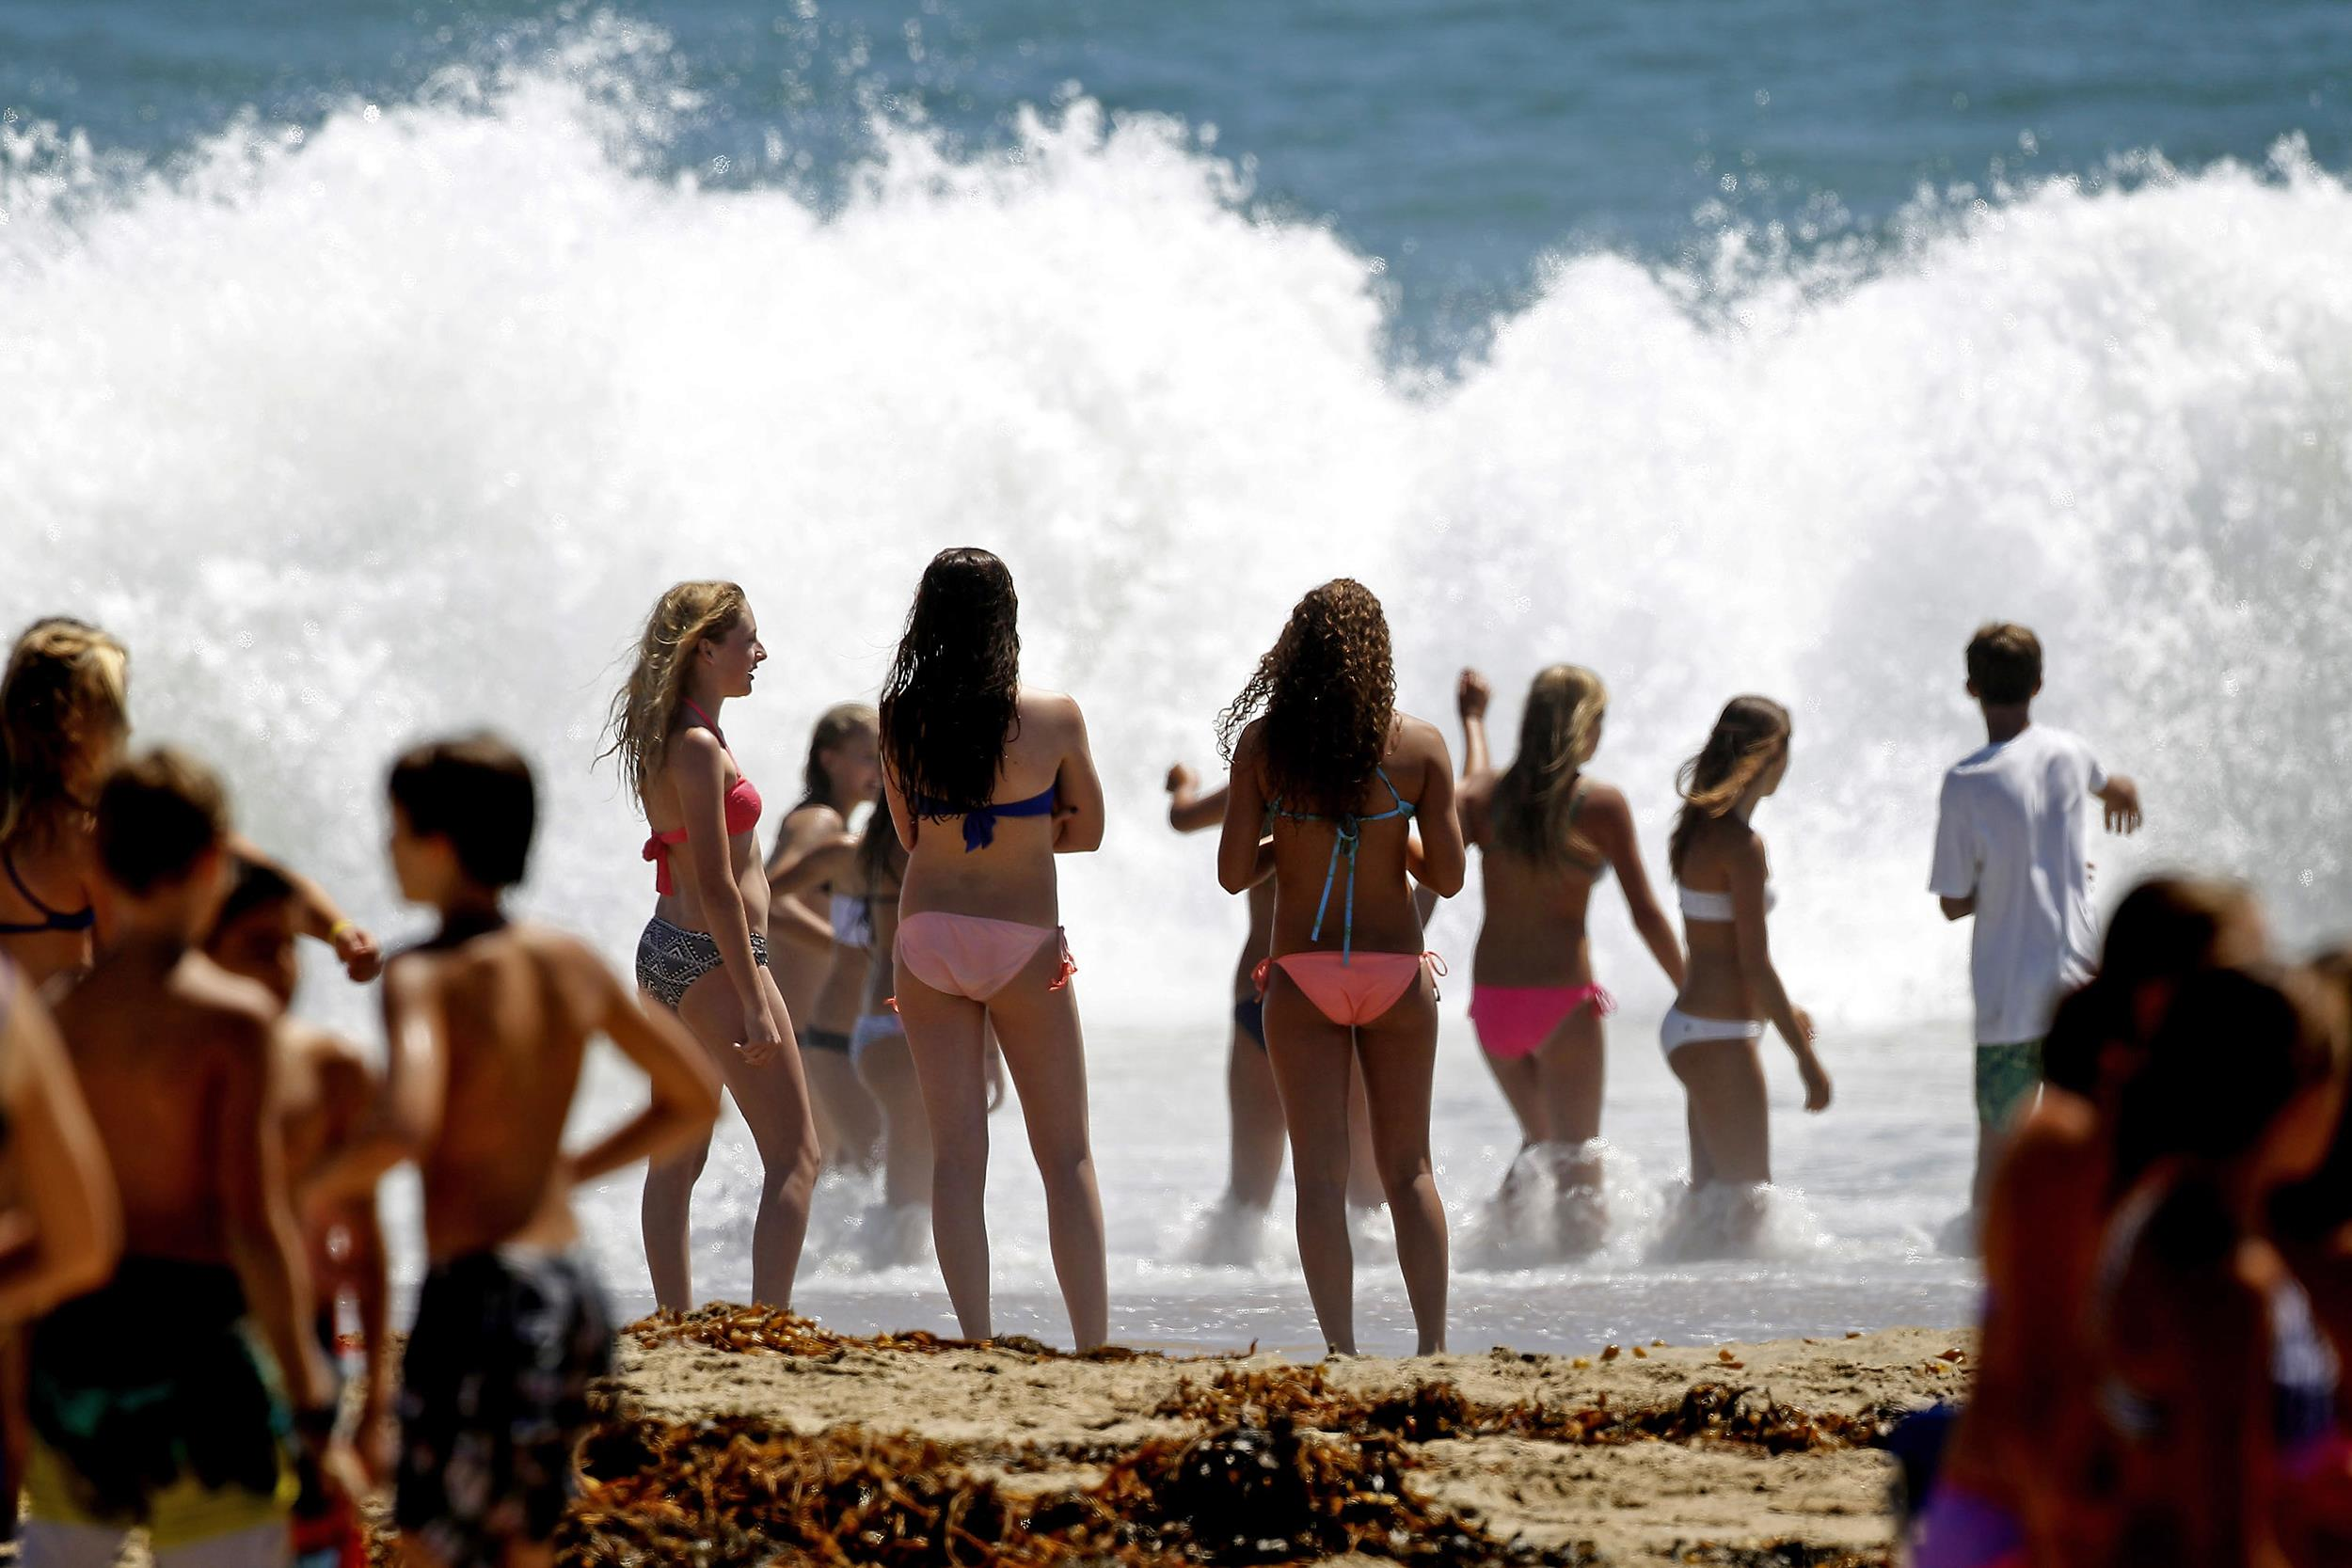 Image: Beachgoers watch large waves crash on the shore at Seal Beach, Calif., on Aug. 26.